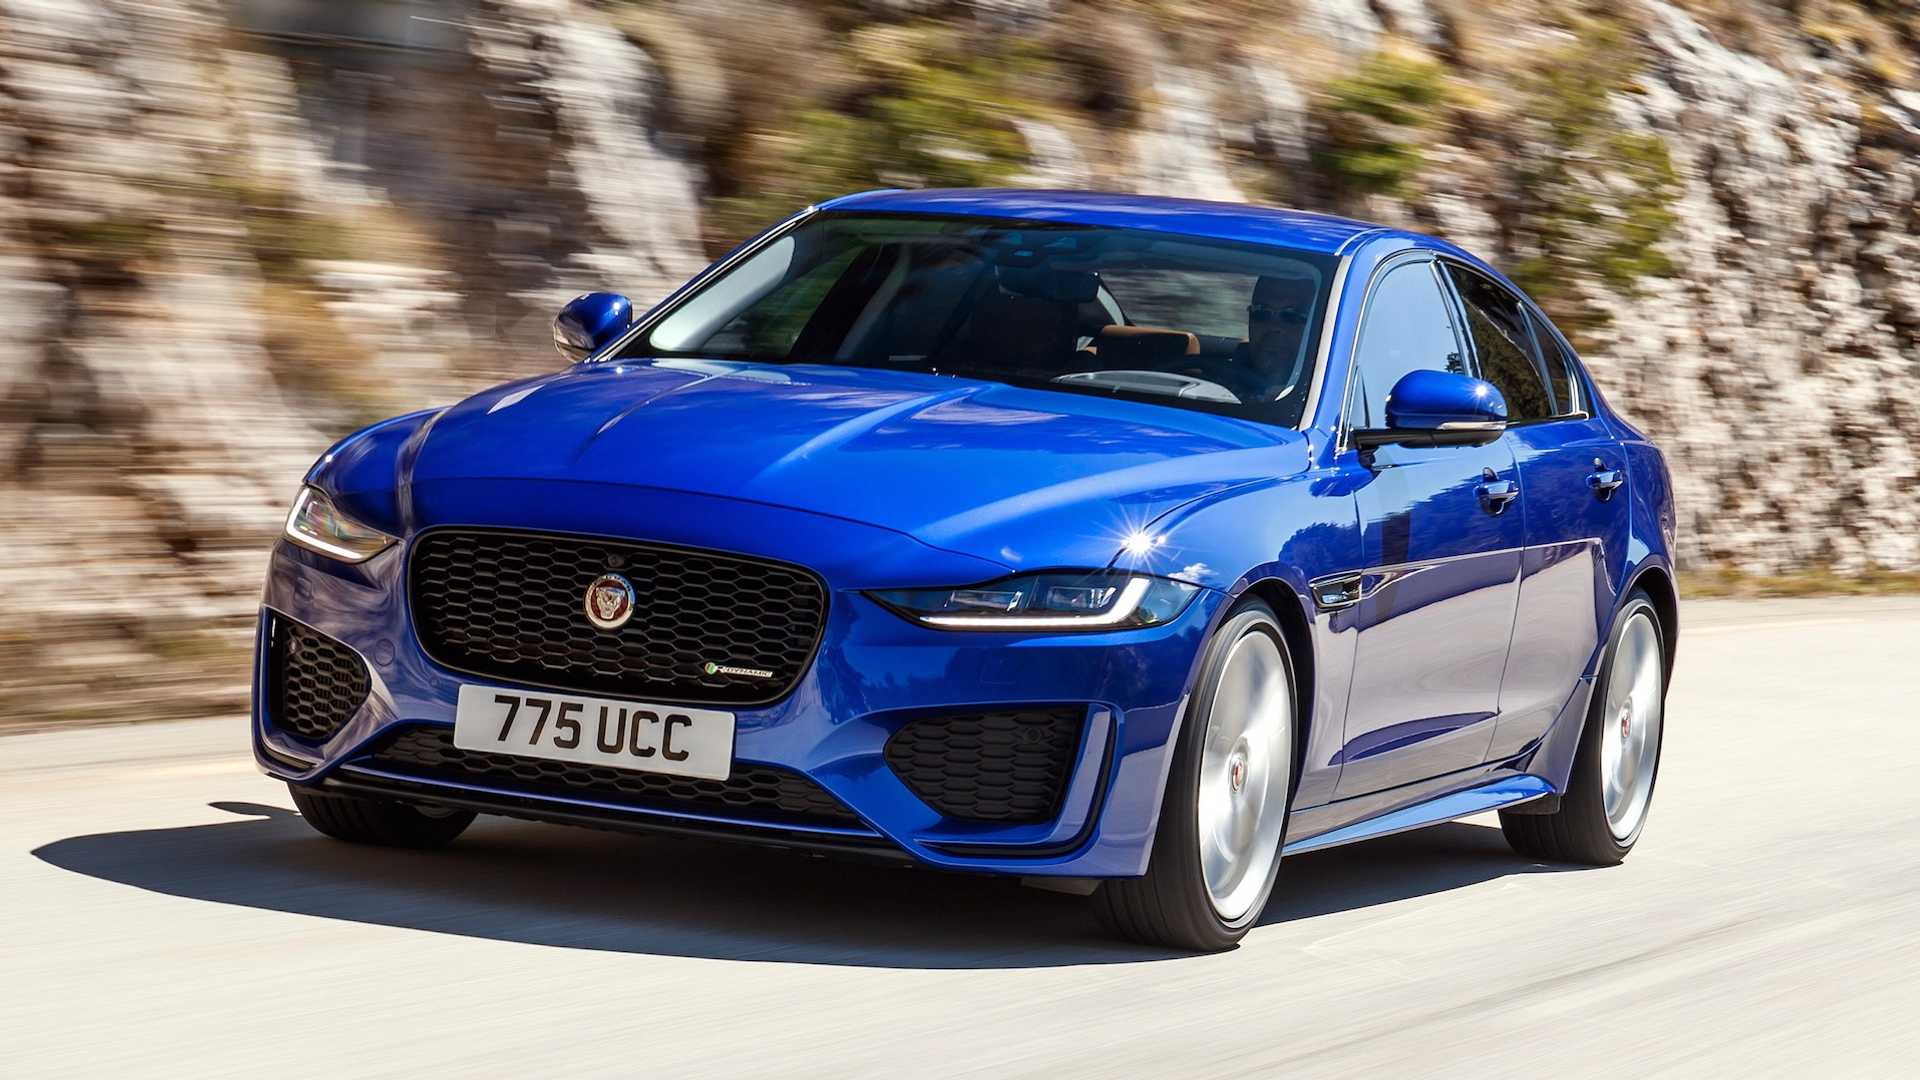 64 New Jaguar Xe 2020 Brasil Pricing